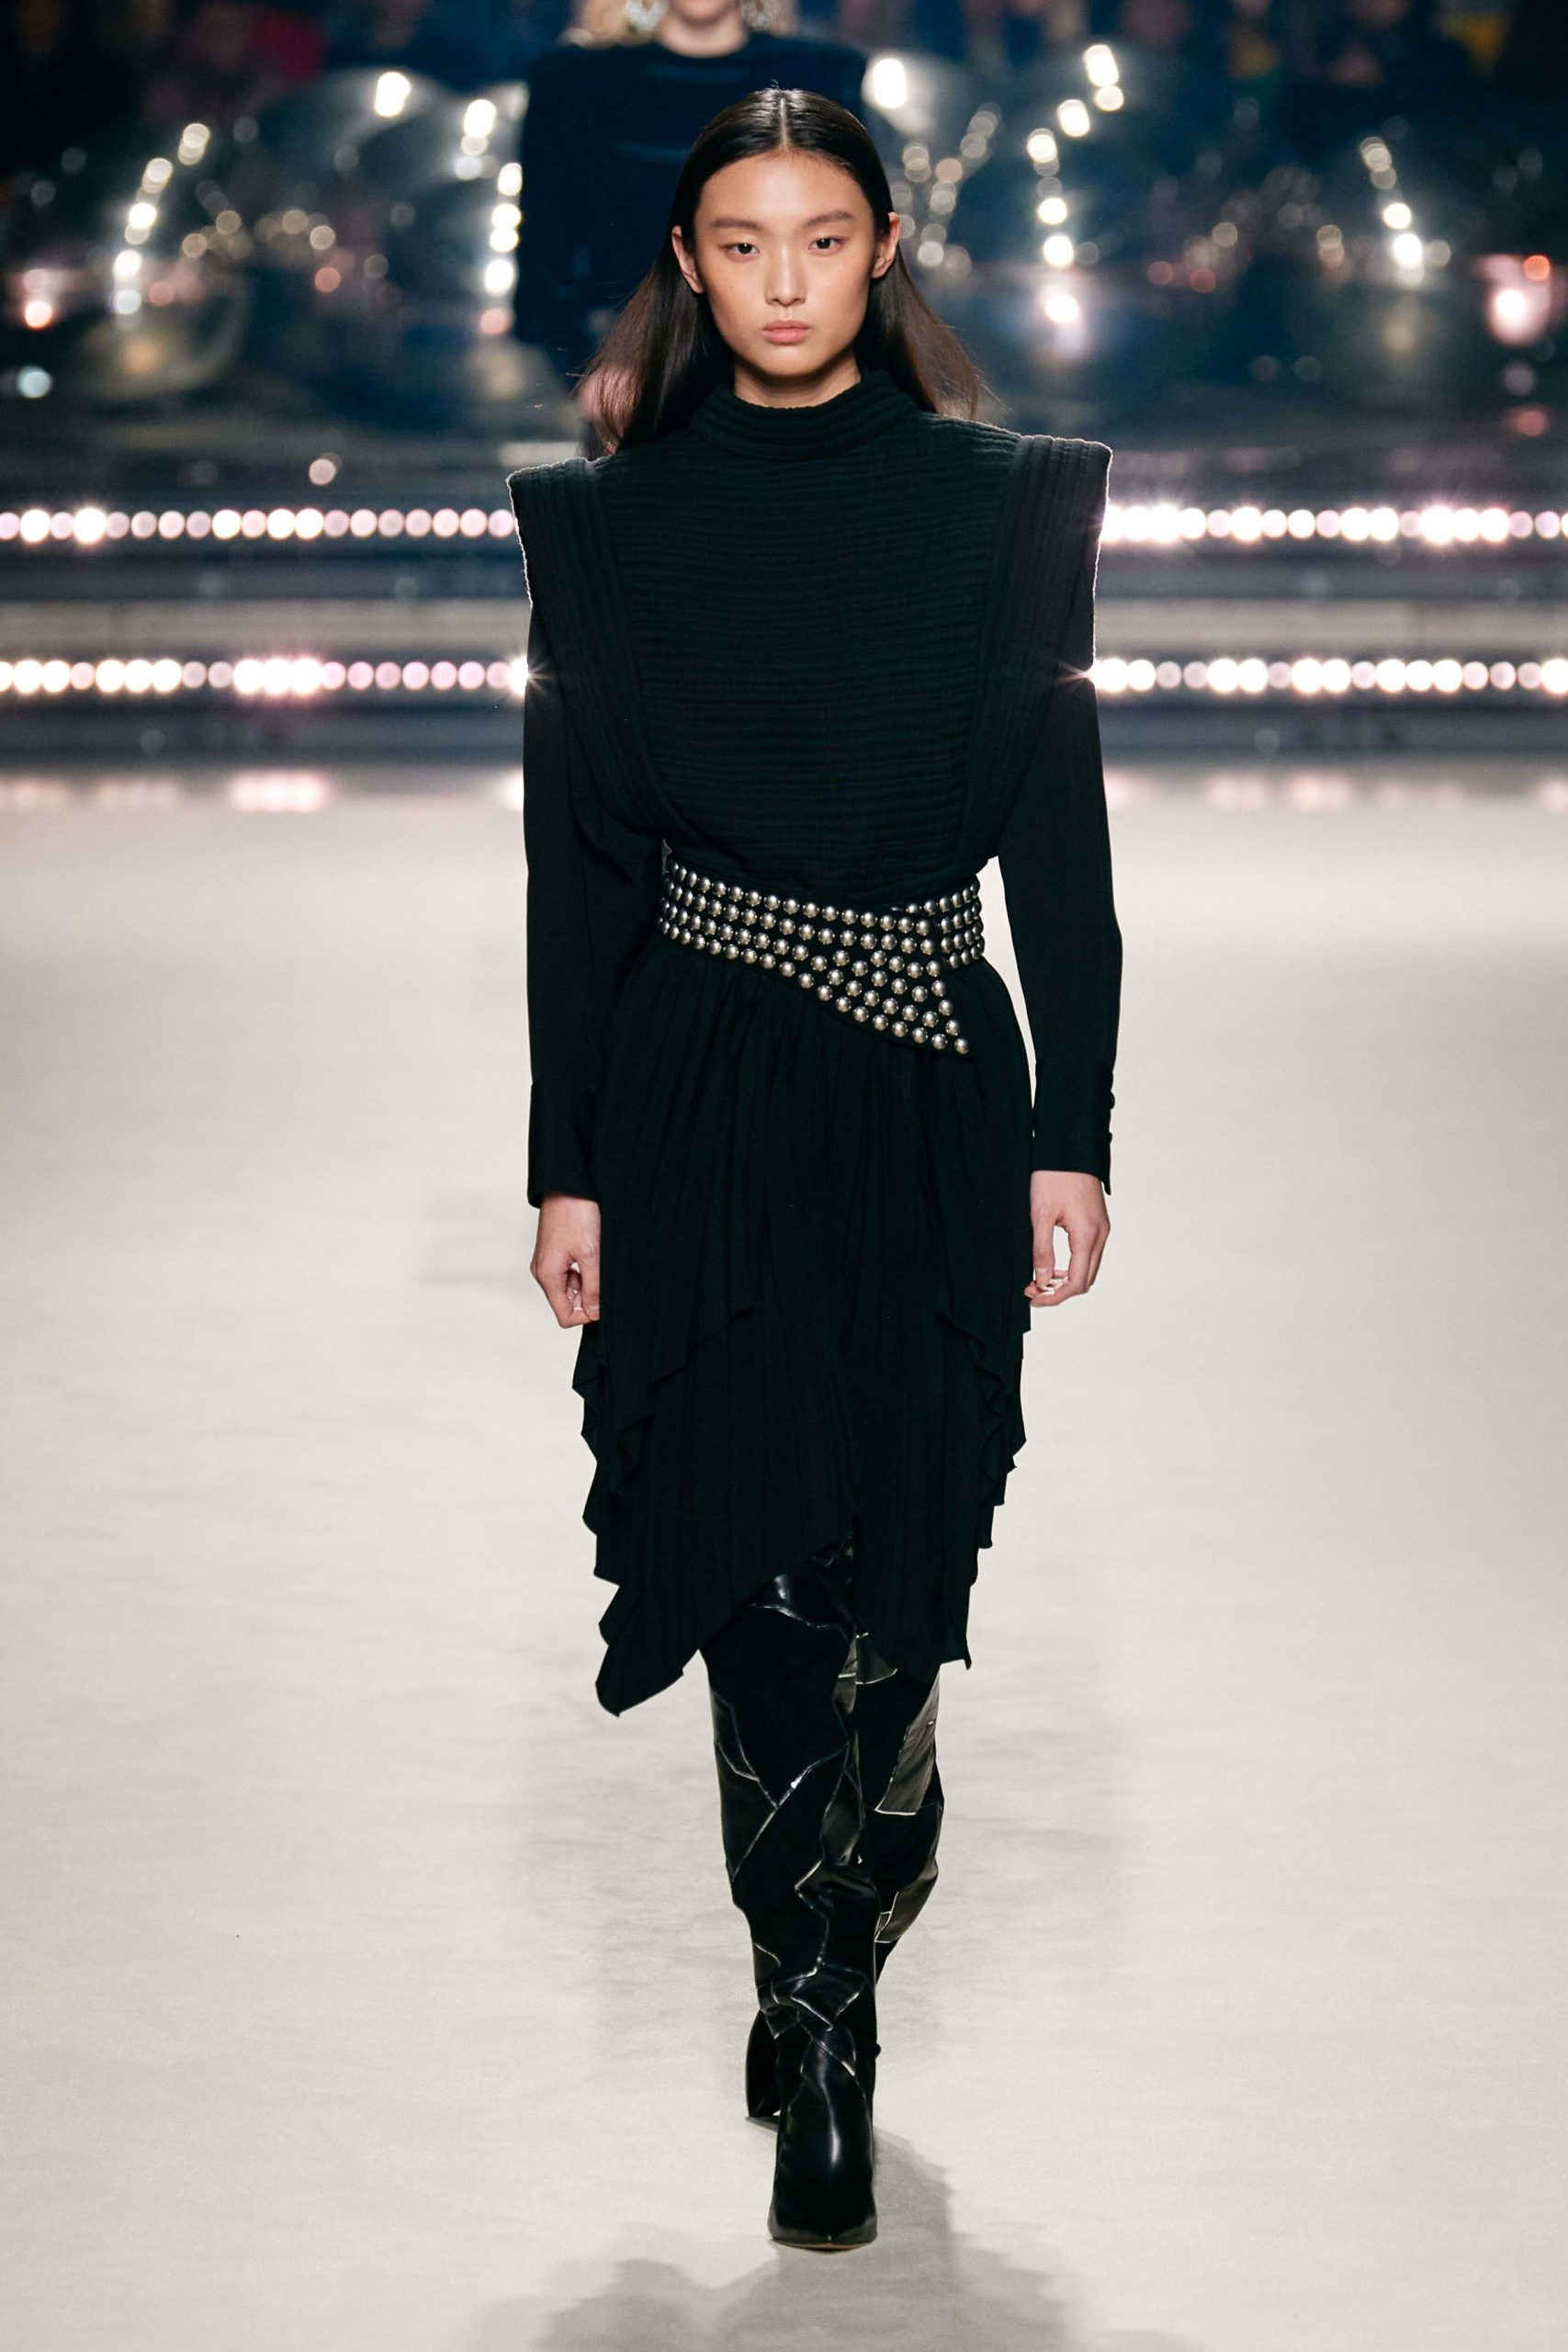 Isabel Marant Fall 2020 trends runway coverage Ready To Wear Vogue belt